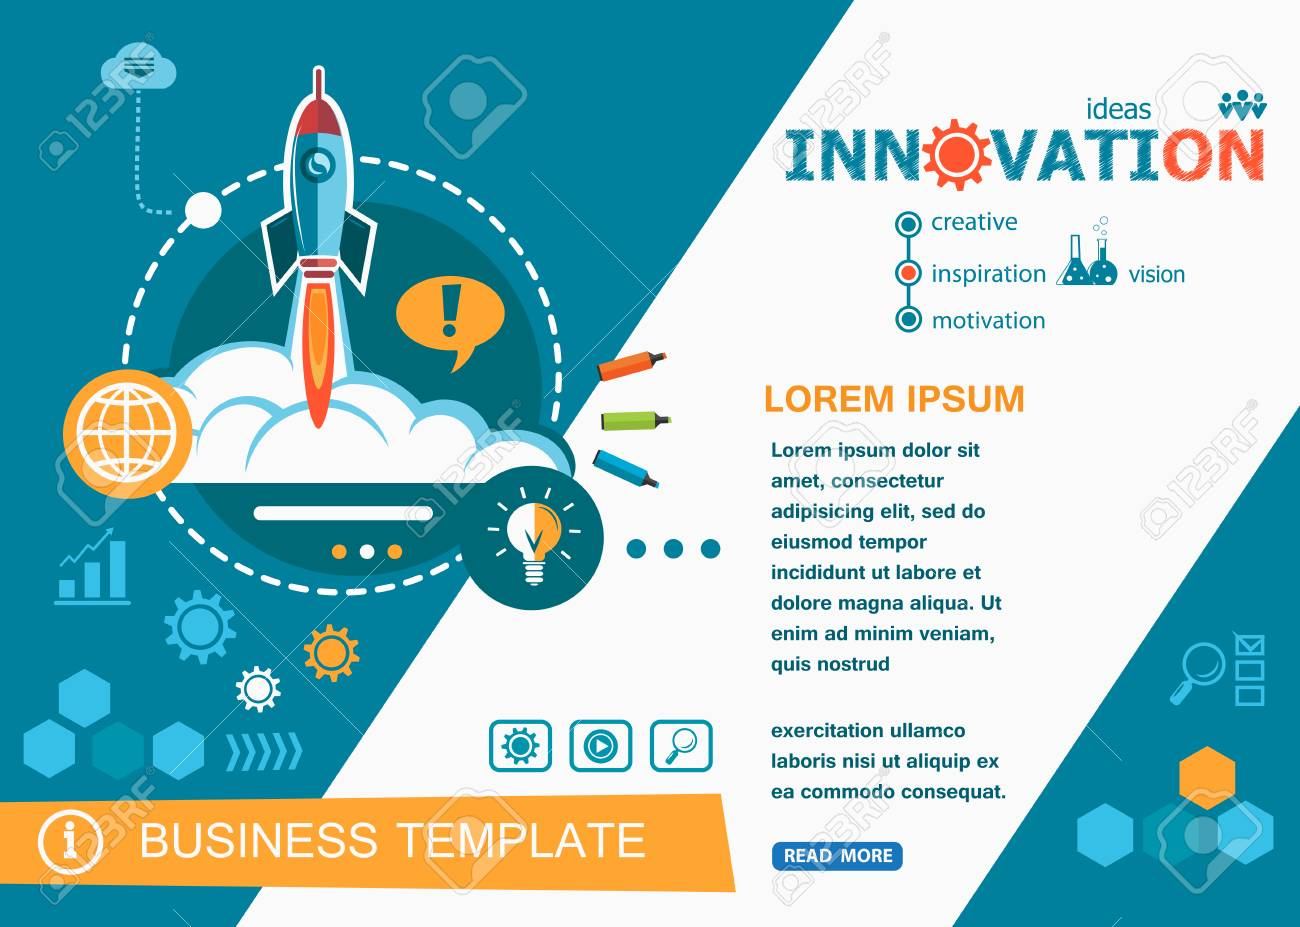 Innovation Design Concepts Of Words Learning And Training Innovation Royalty Free Cliparts Vectors And Stock Illustration Image 63731874